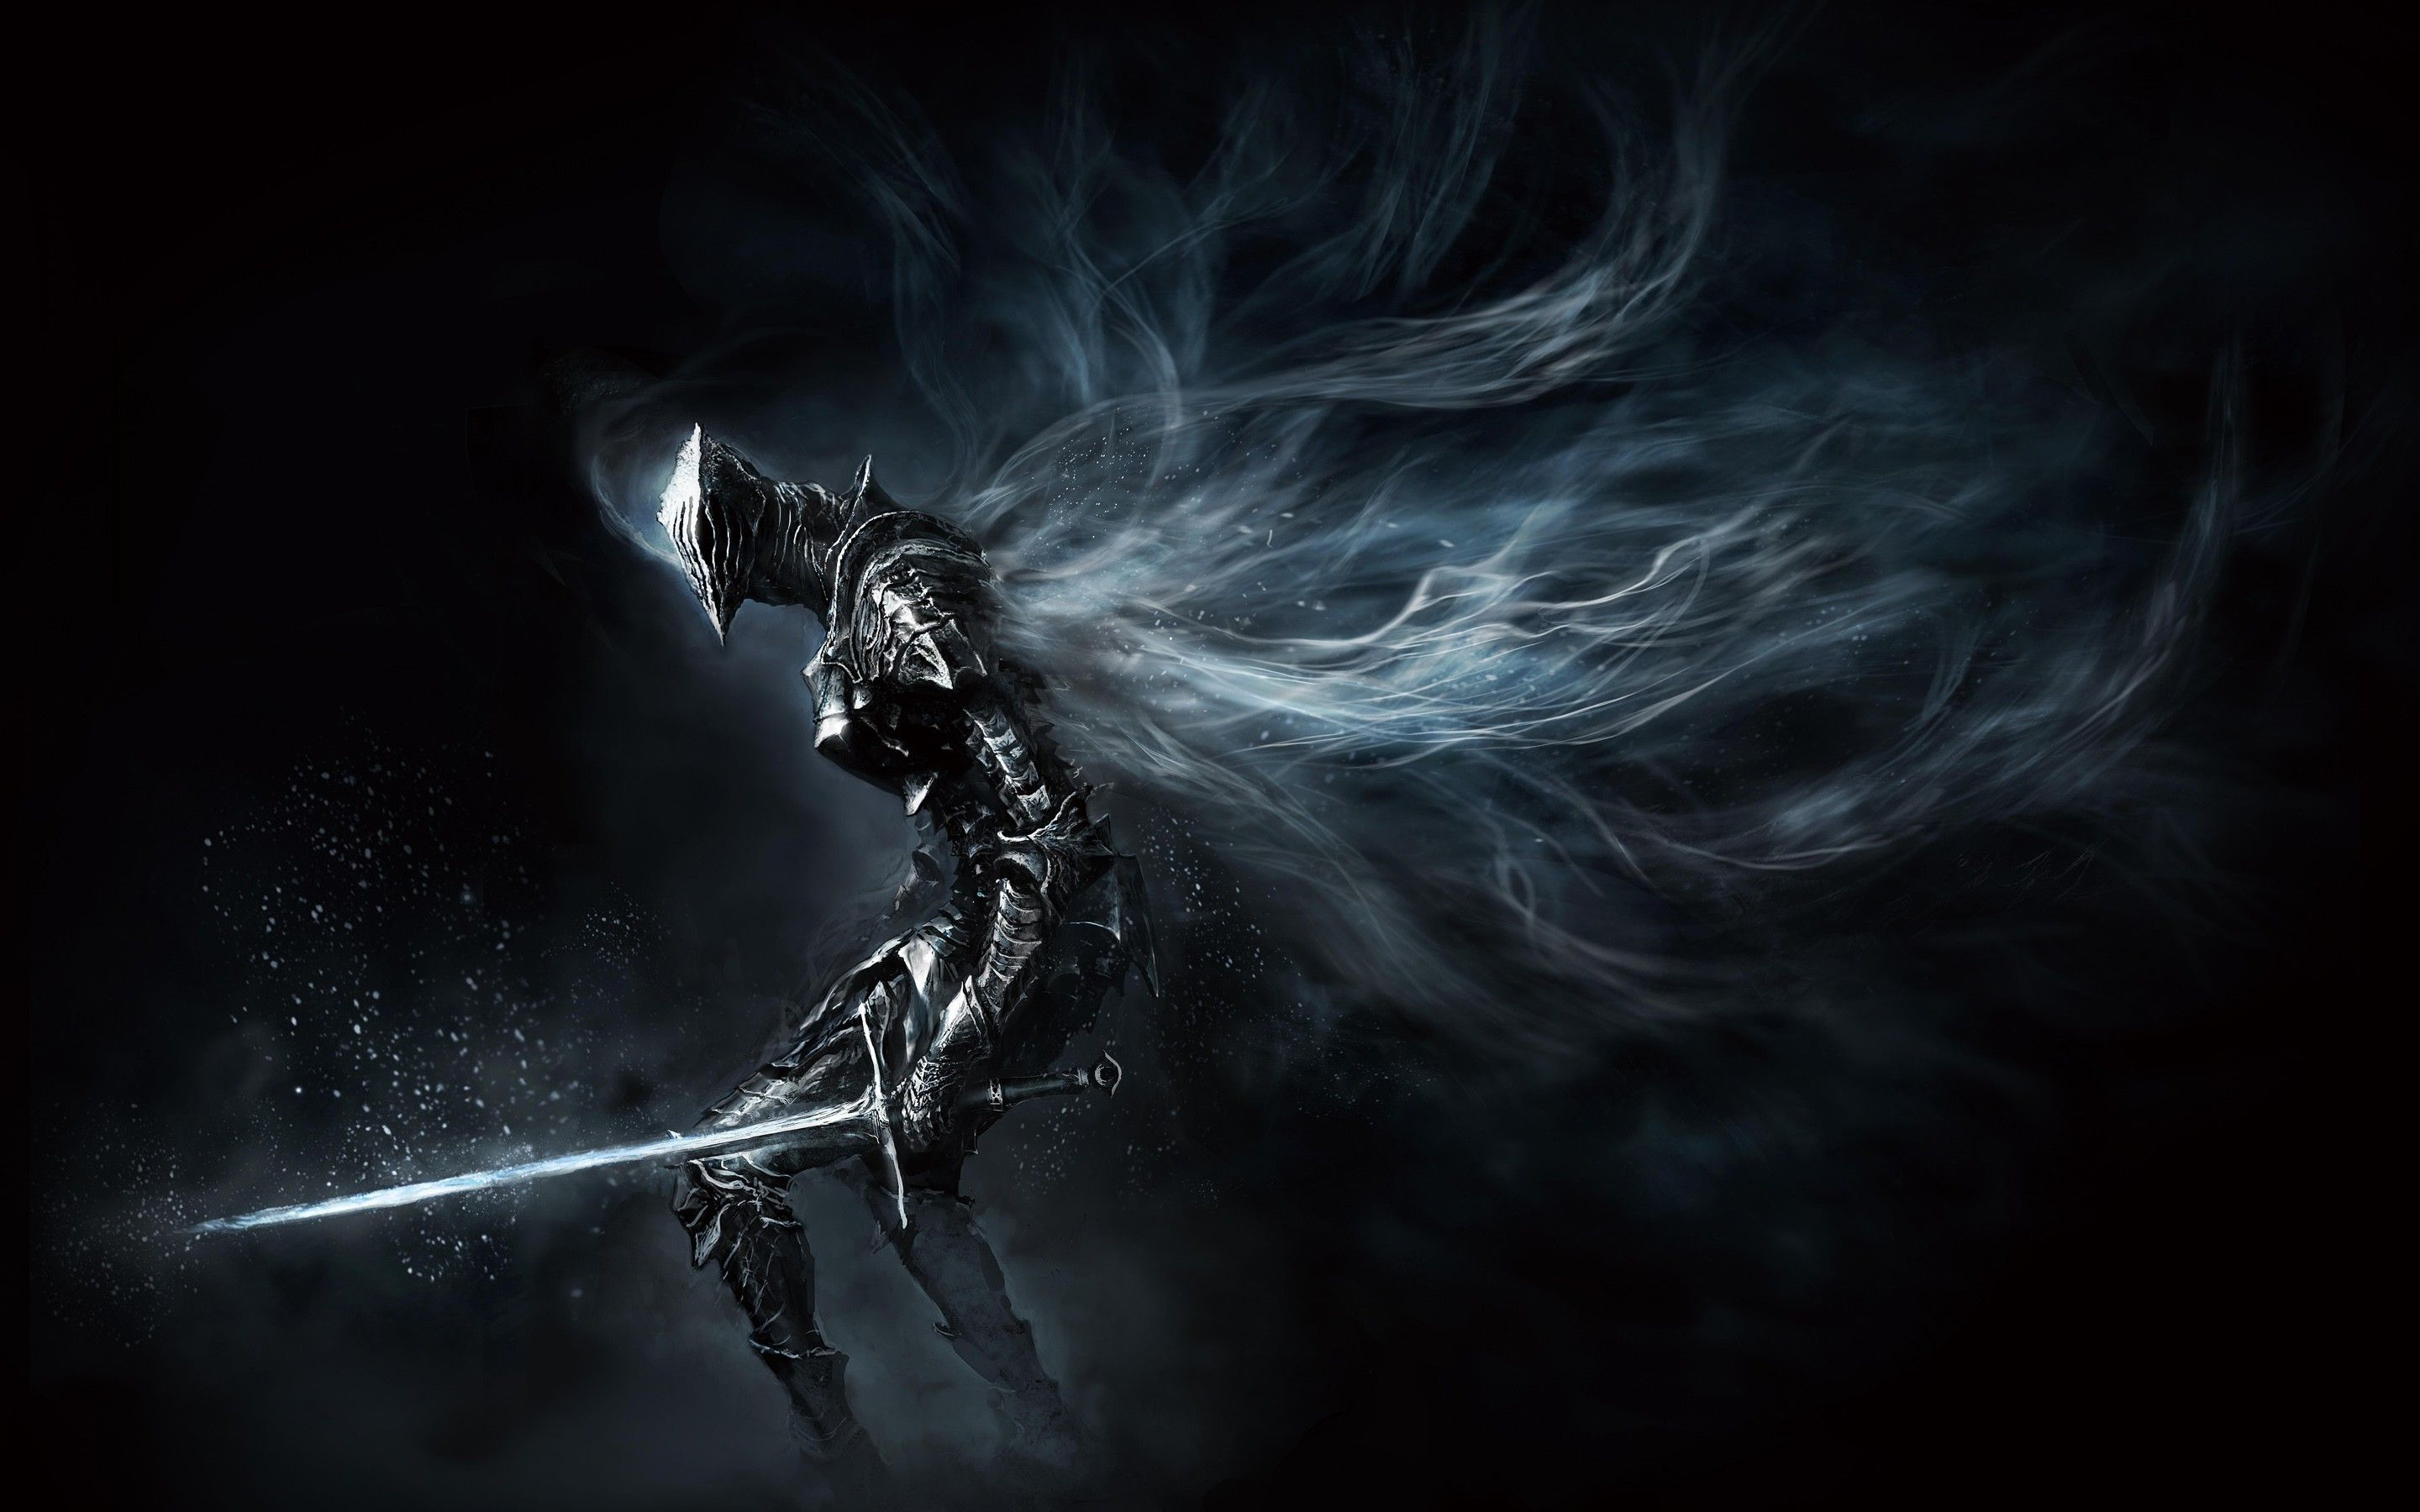 dark souls 3 wallpaper 1080p, dark souls 3 wallpaper hd